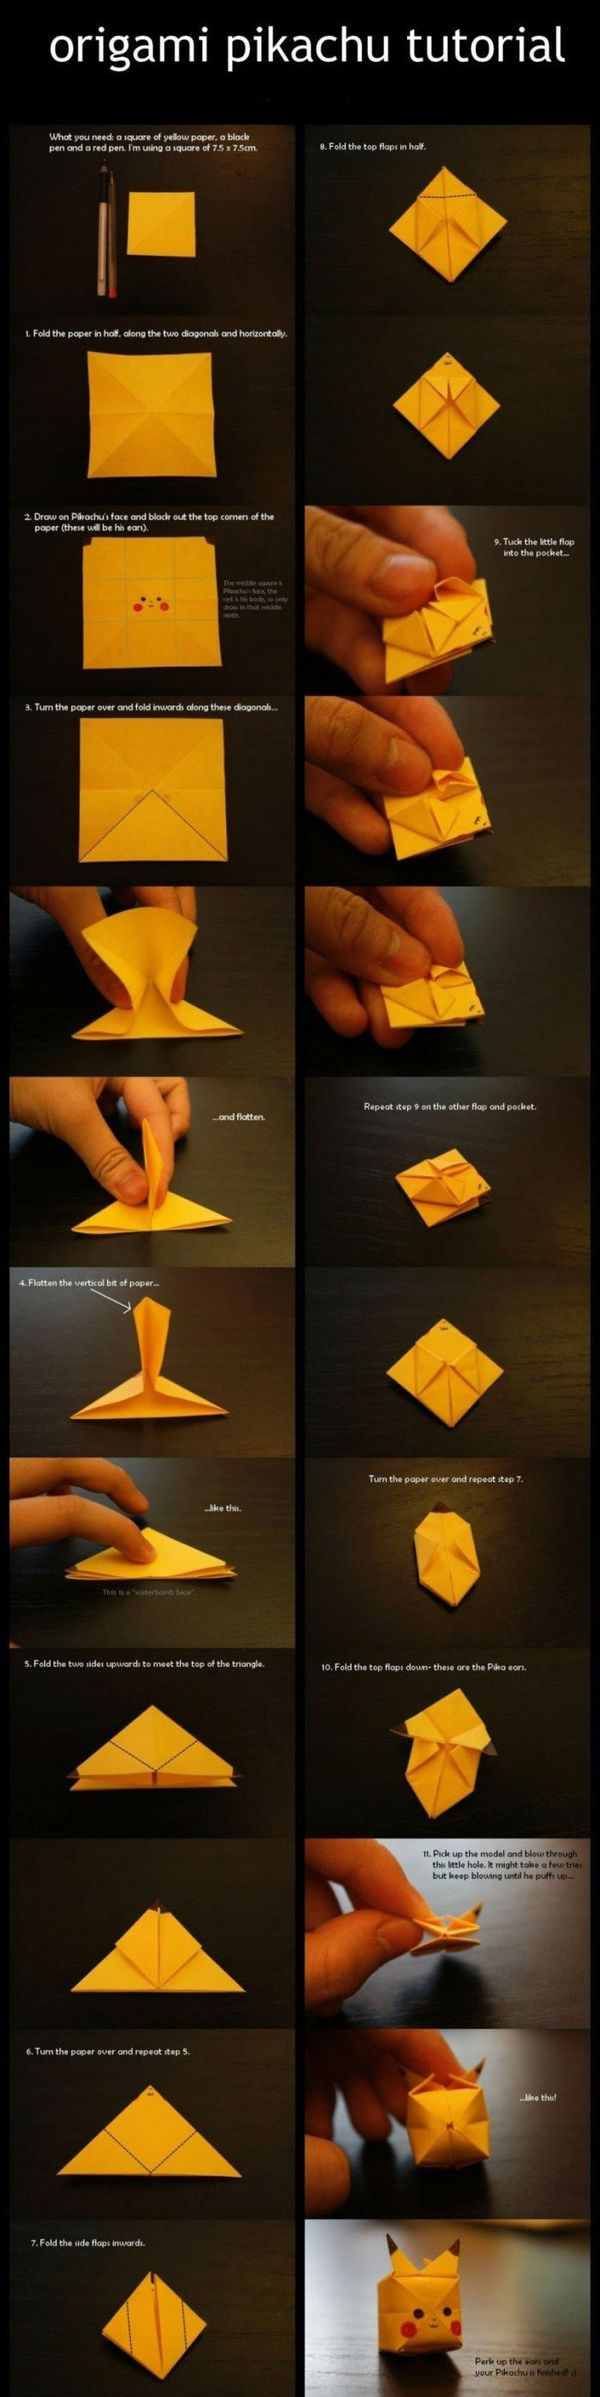 How Tp Make A Paper Pikachu Origami Pinterest Posts And